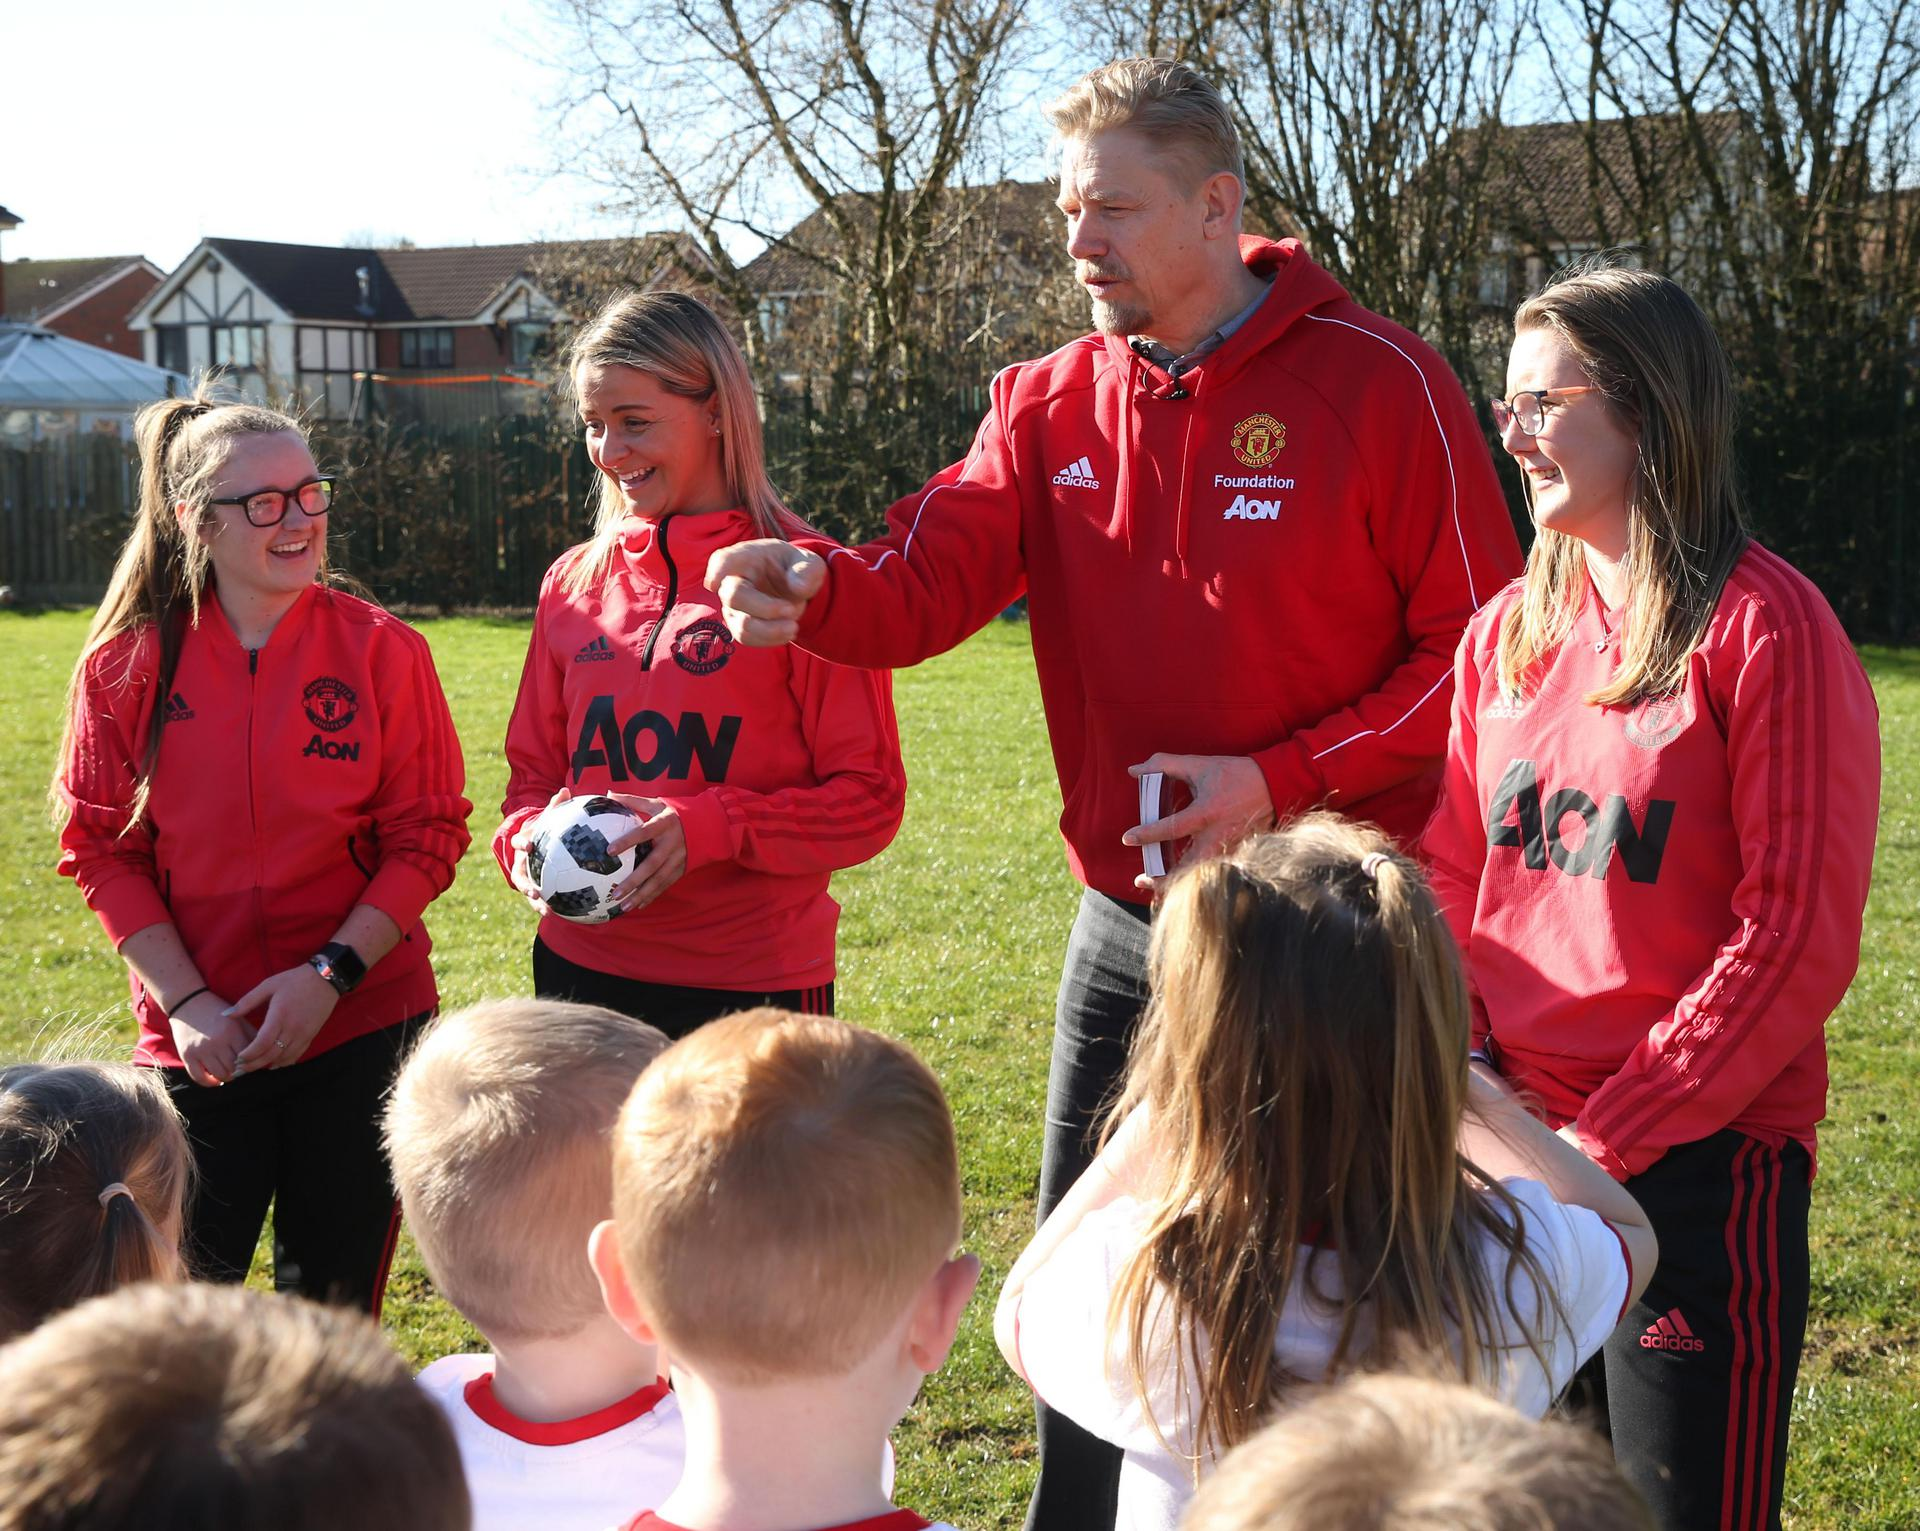 Peter Schmeichel with the Manchester United Foundation.